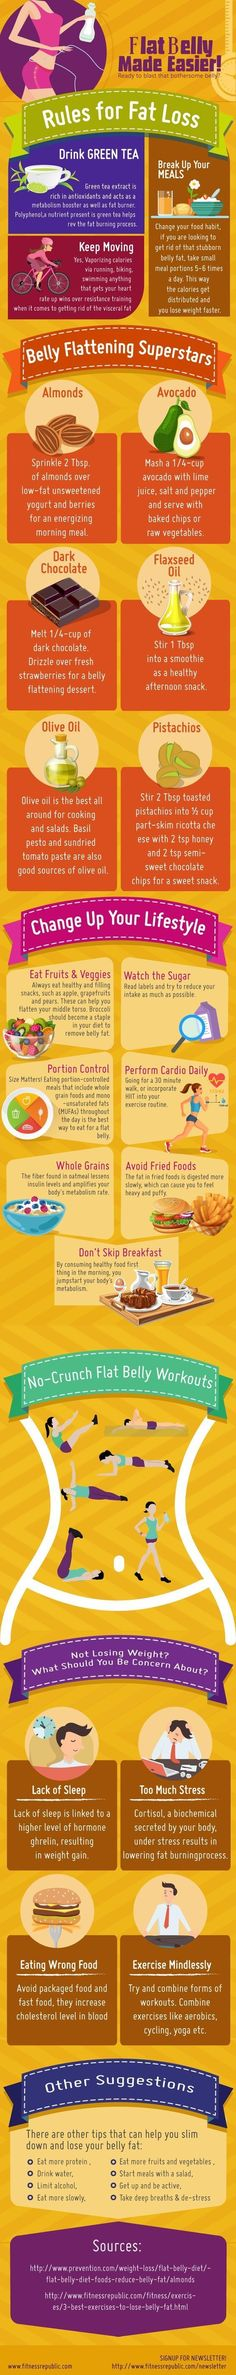 Infographic: Tips For Attaining A Flat Stomach, What To Eat And Do To Burn Fat - DesignTAXI.com: